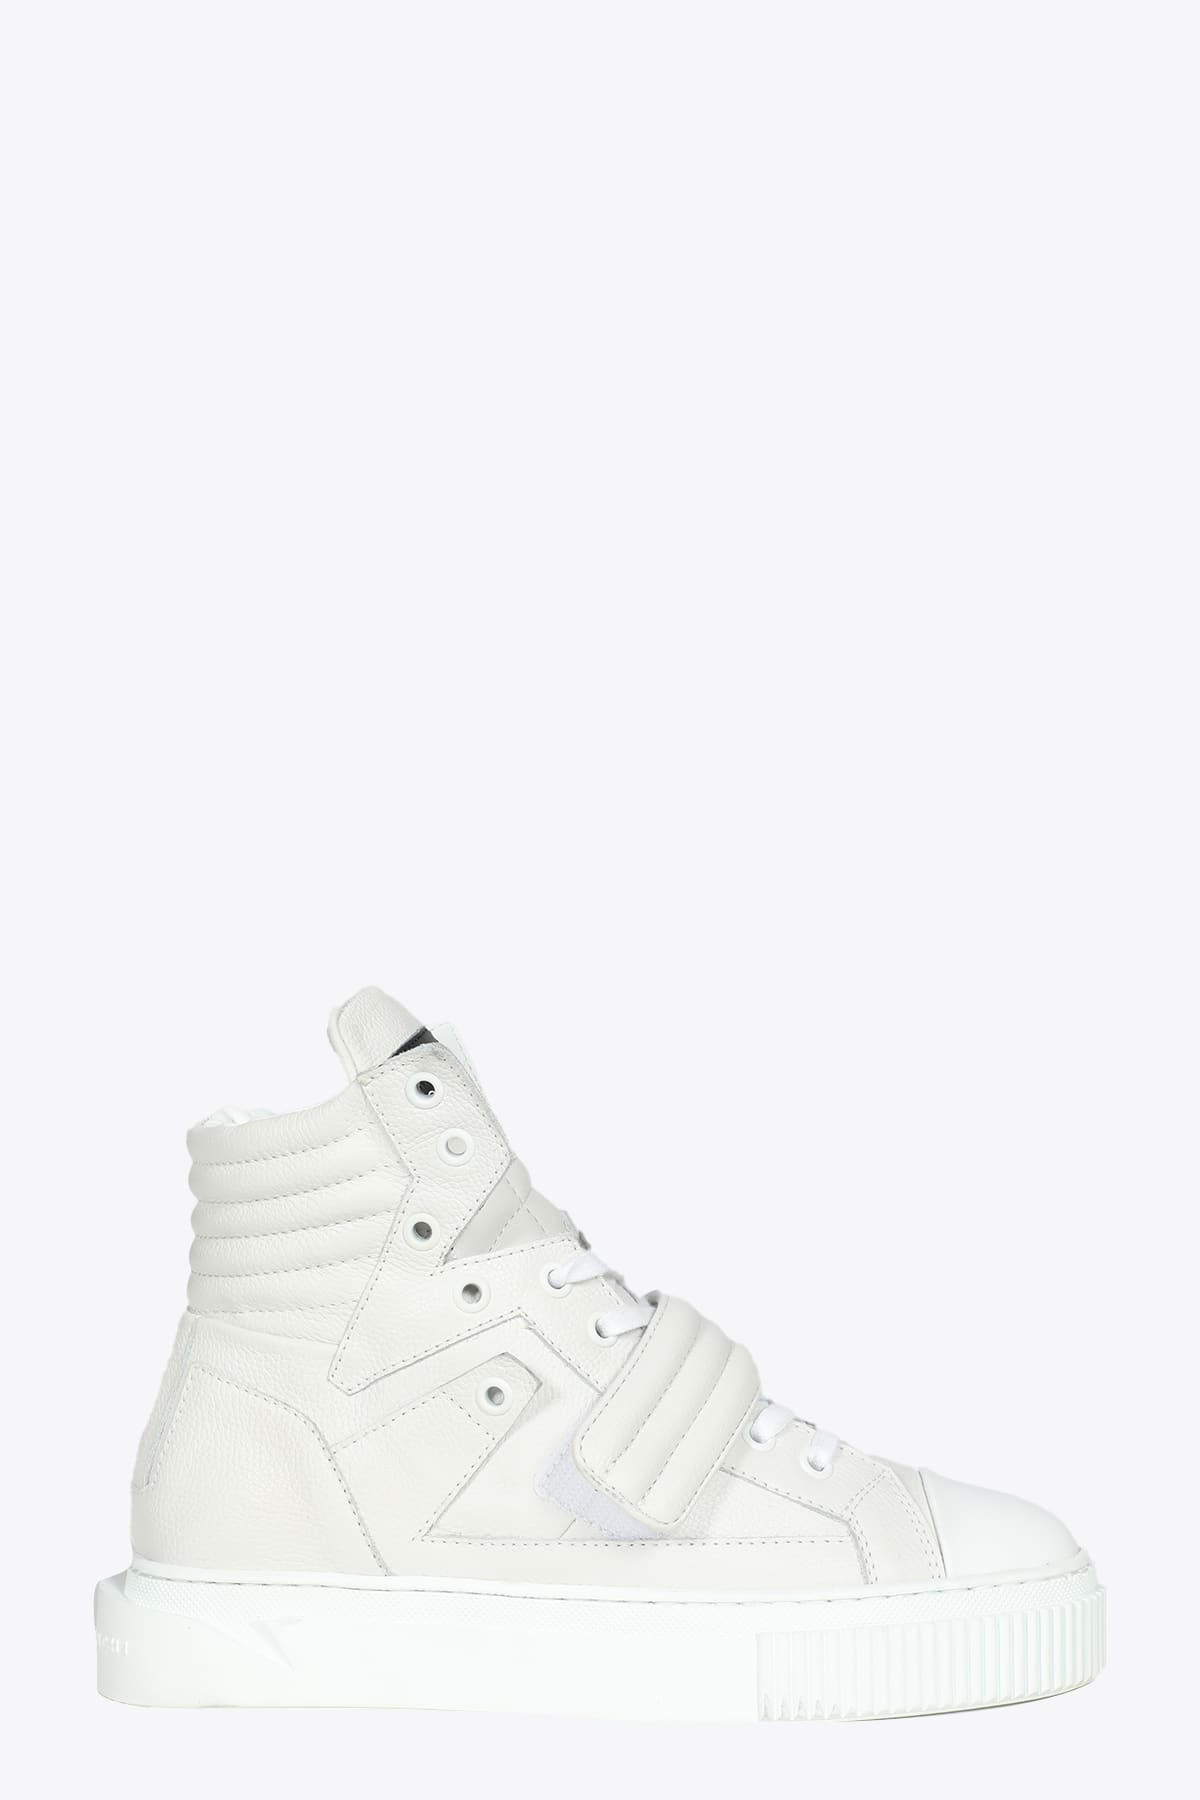 White Deer Leather Hypnos Sneaker